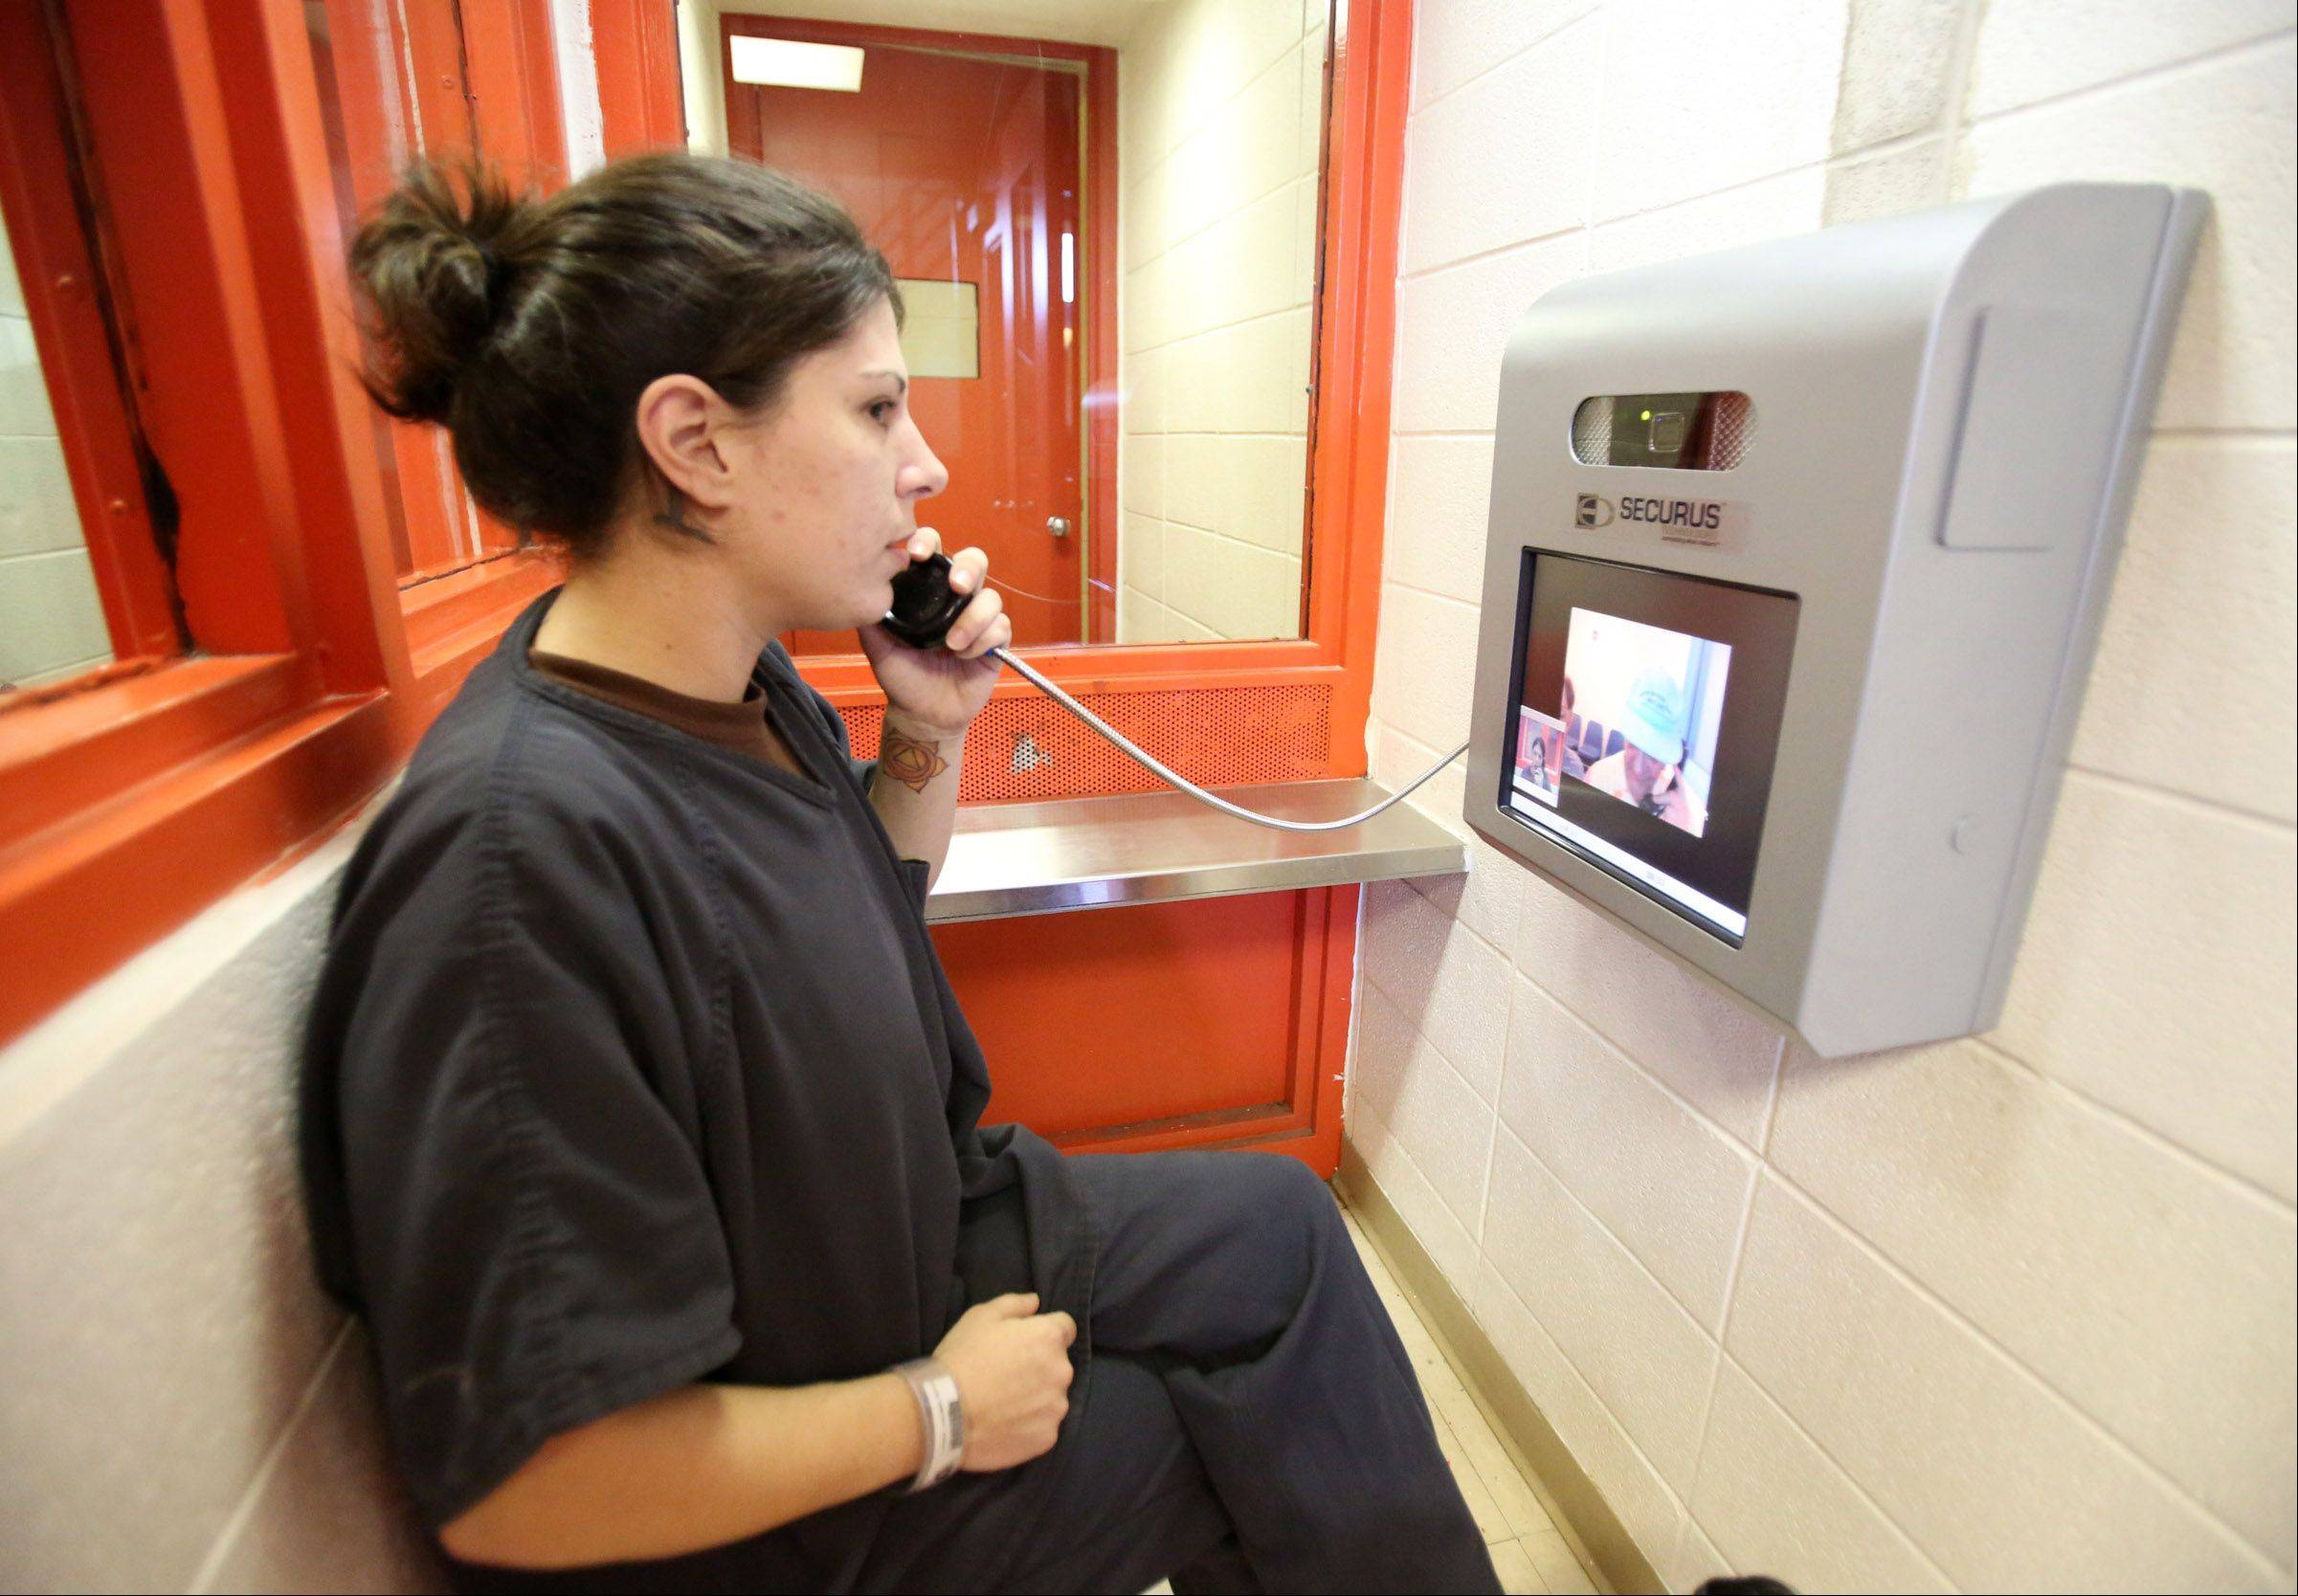 Editorial: The benefits of video visits for jail inmates